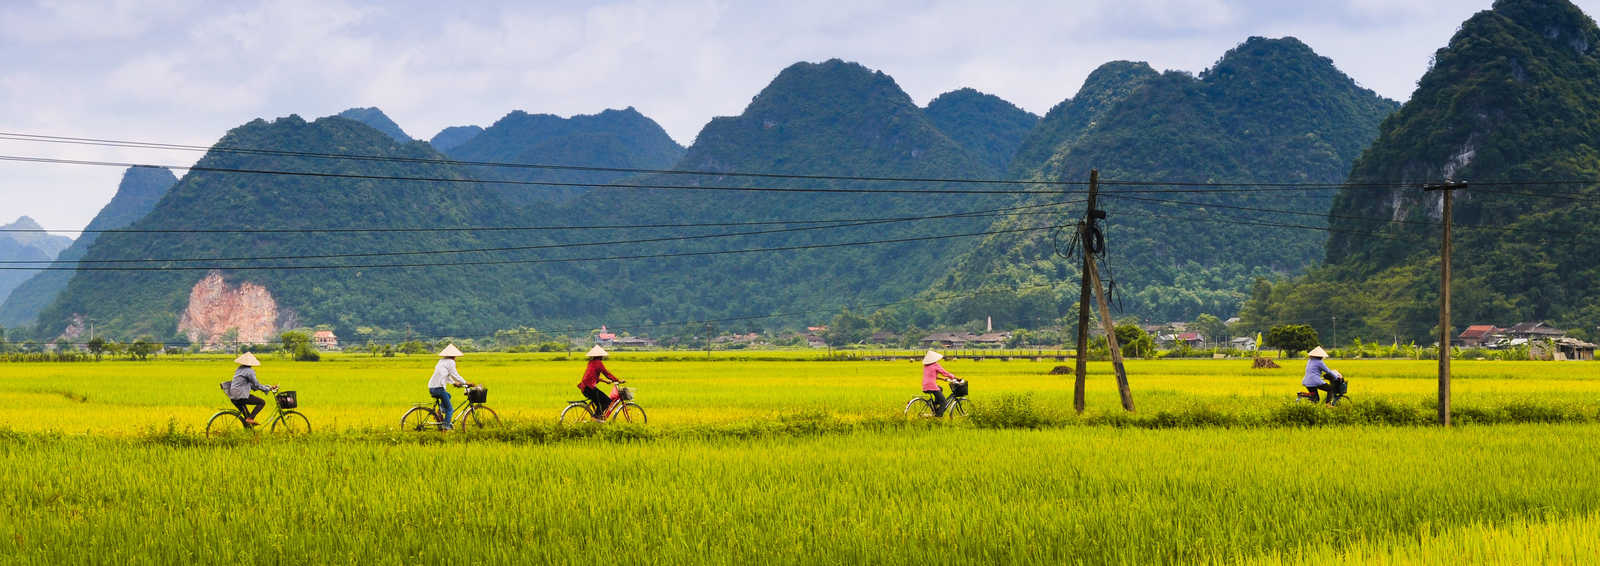 asian countryside